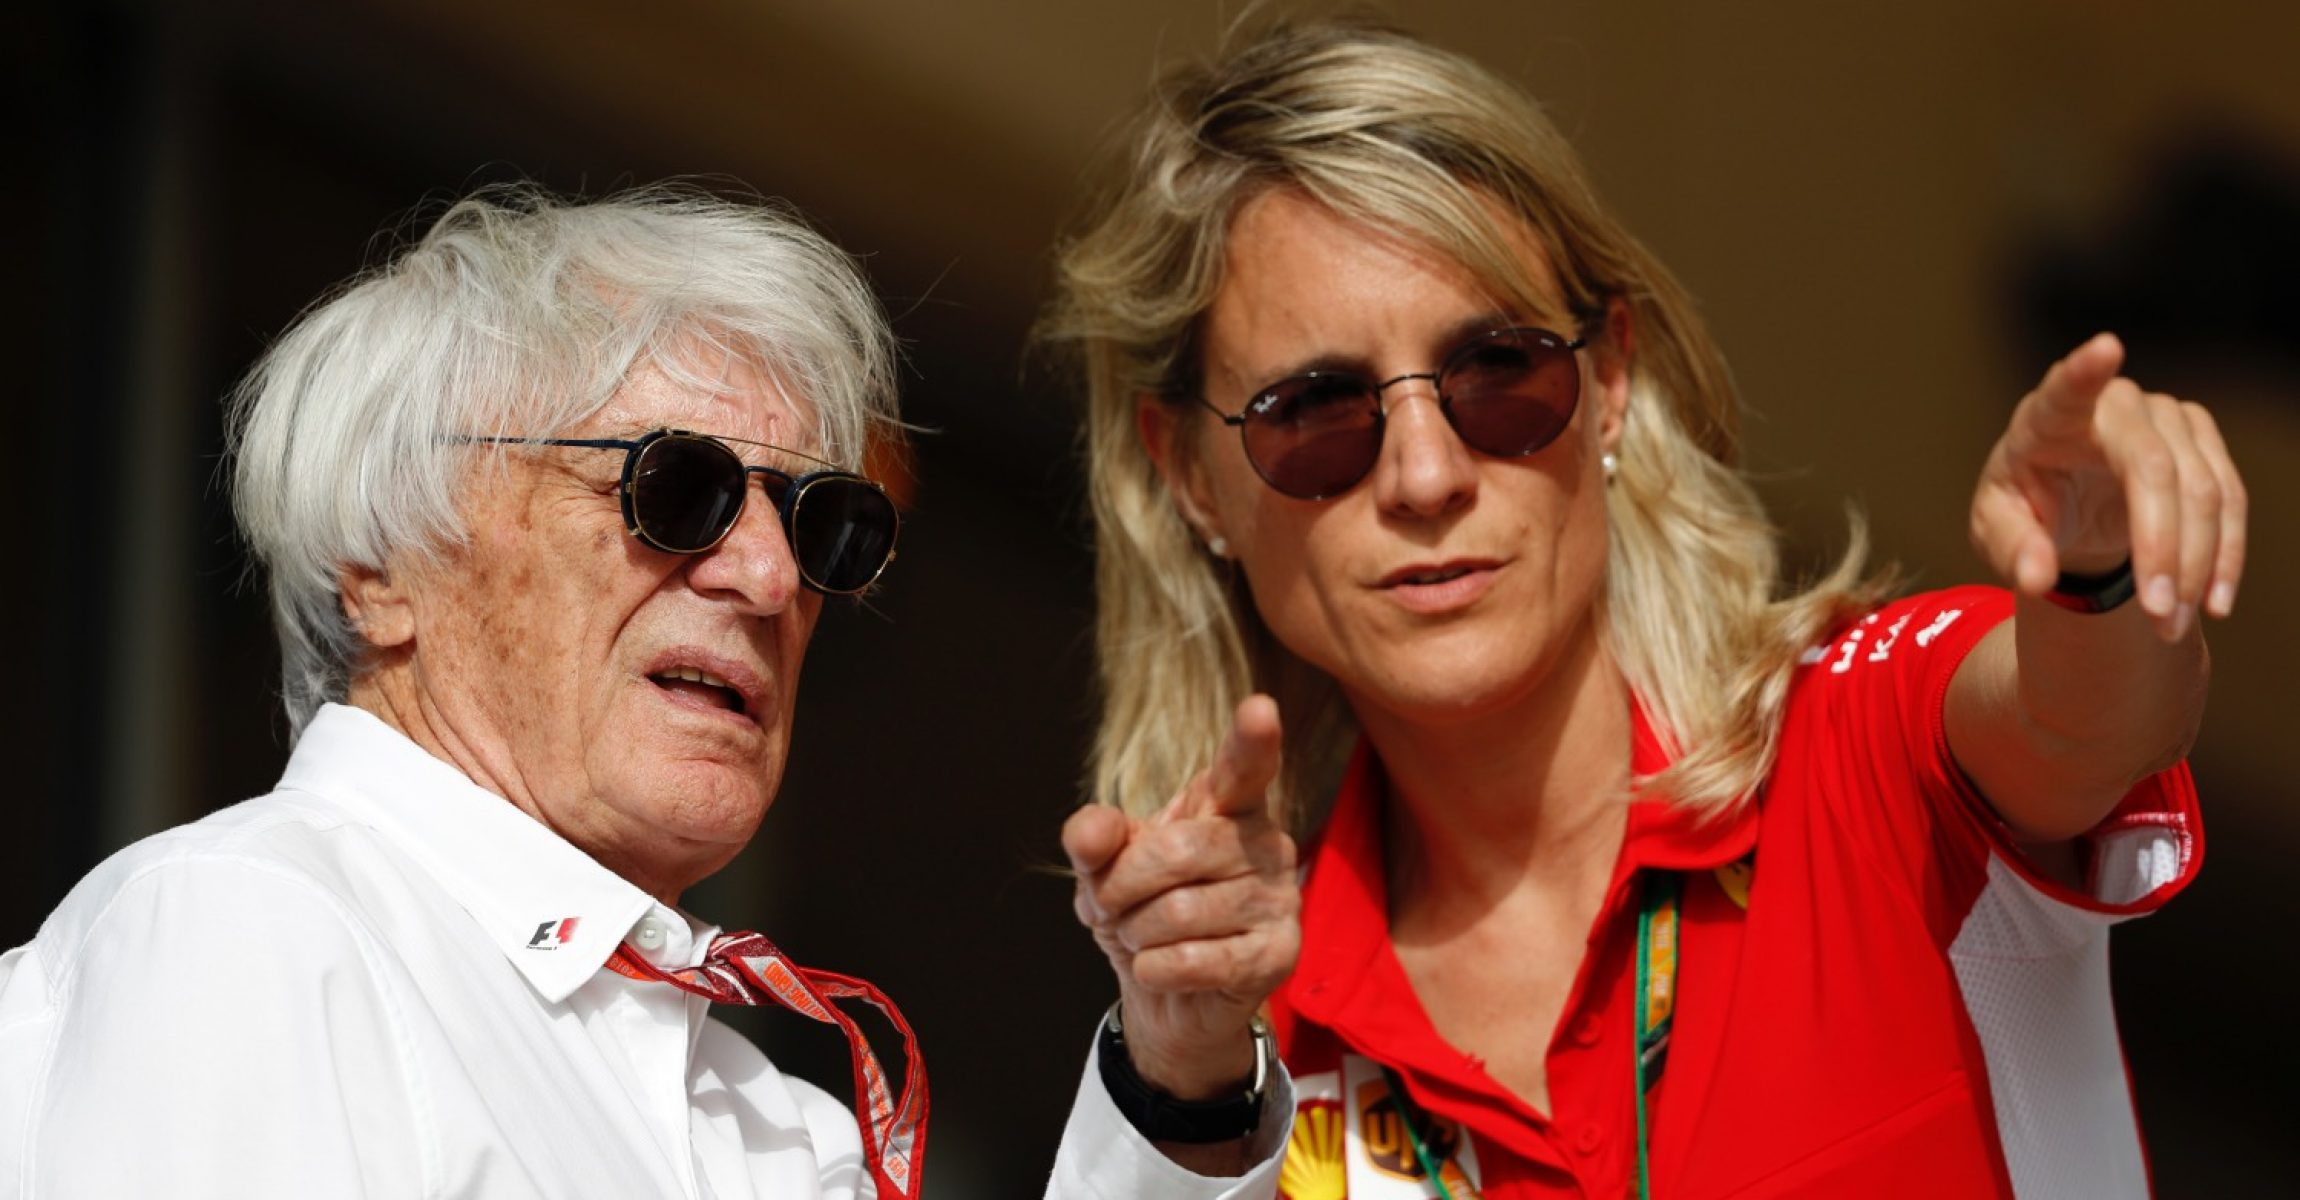 Bernie Ecclestone (GBR) and Britta Roeske (AUT) at Formula One World Championship, Rd2, Bahrain Grand Prix, Race, Bahrain International Circuit, Sakhir, Bahrain, Sunday 8 April 2018.